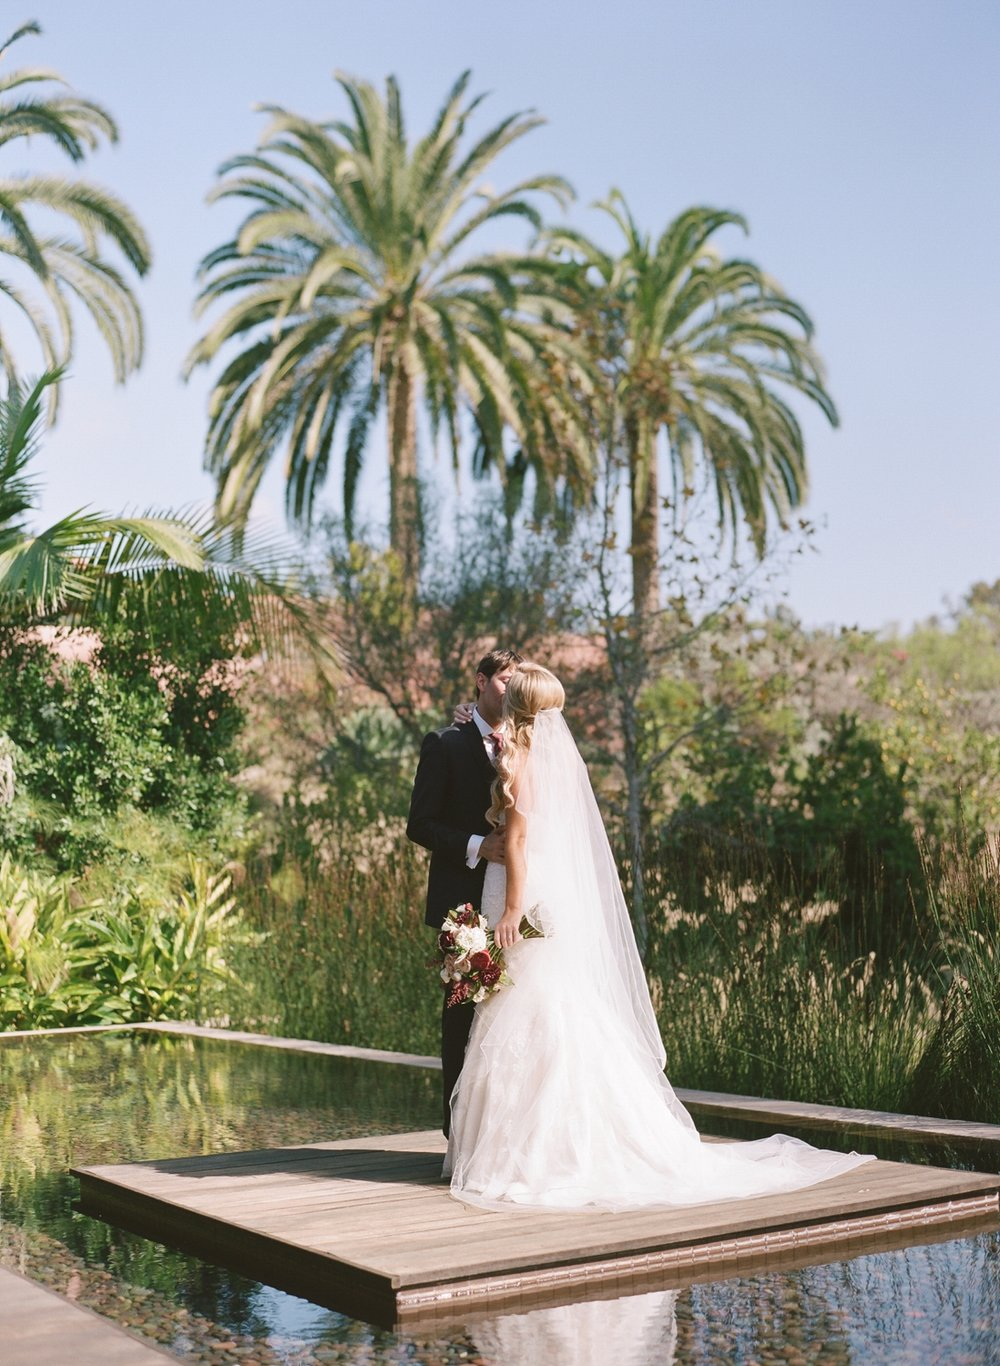 <b>Amanda + Jason</b><br><i>Rancho Valencia Resort | California</i>